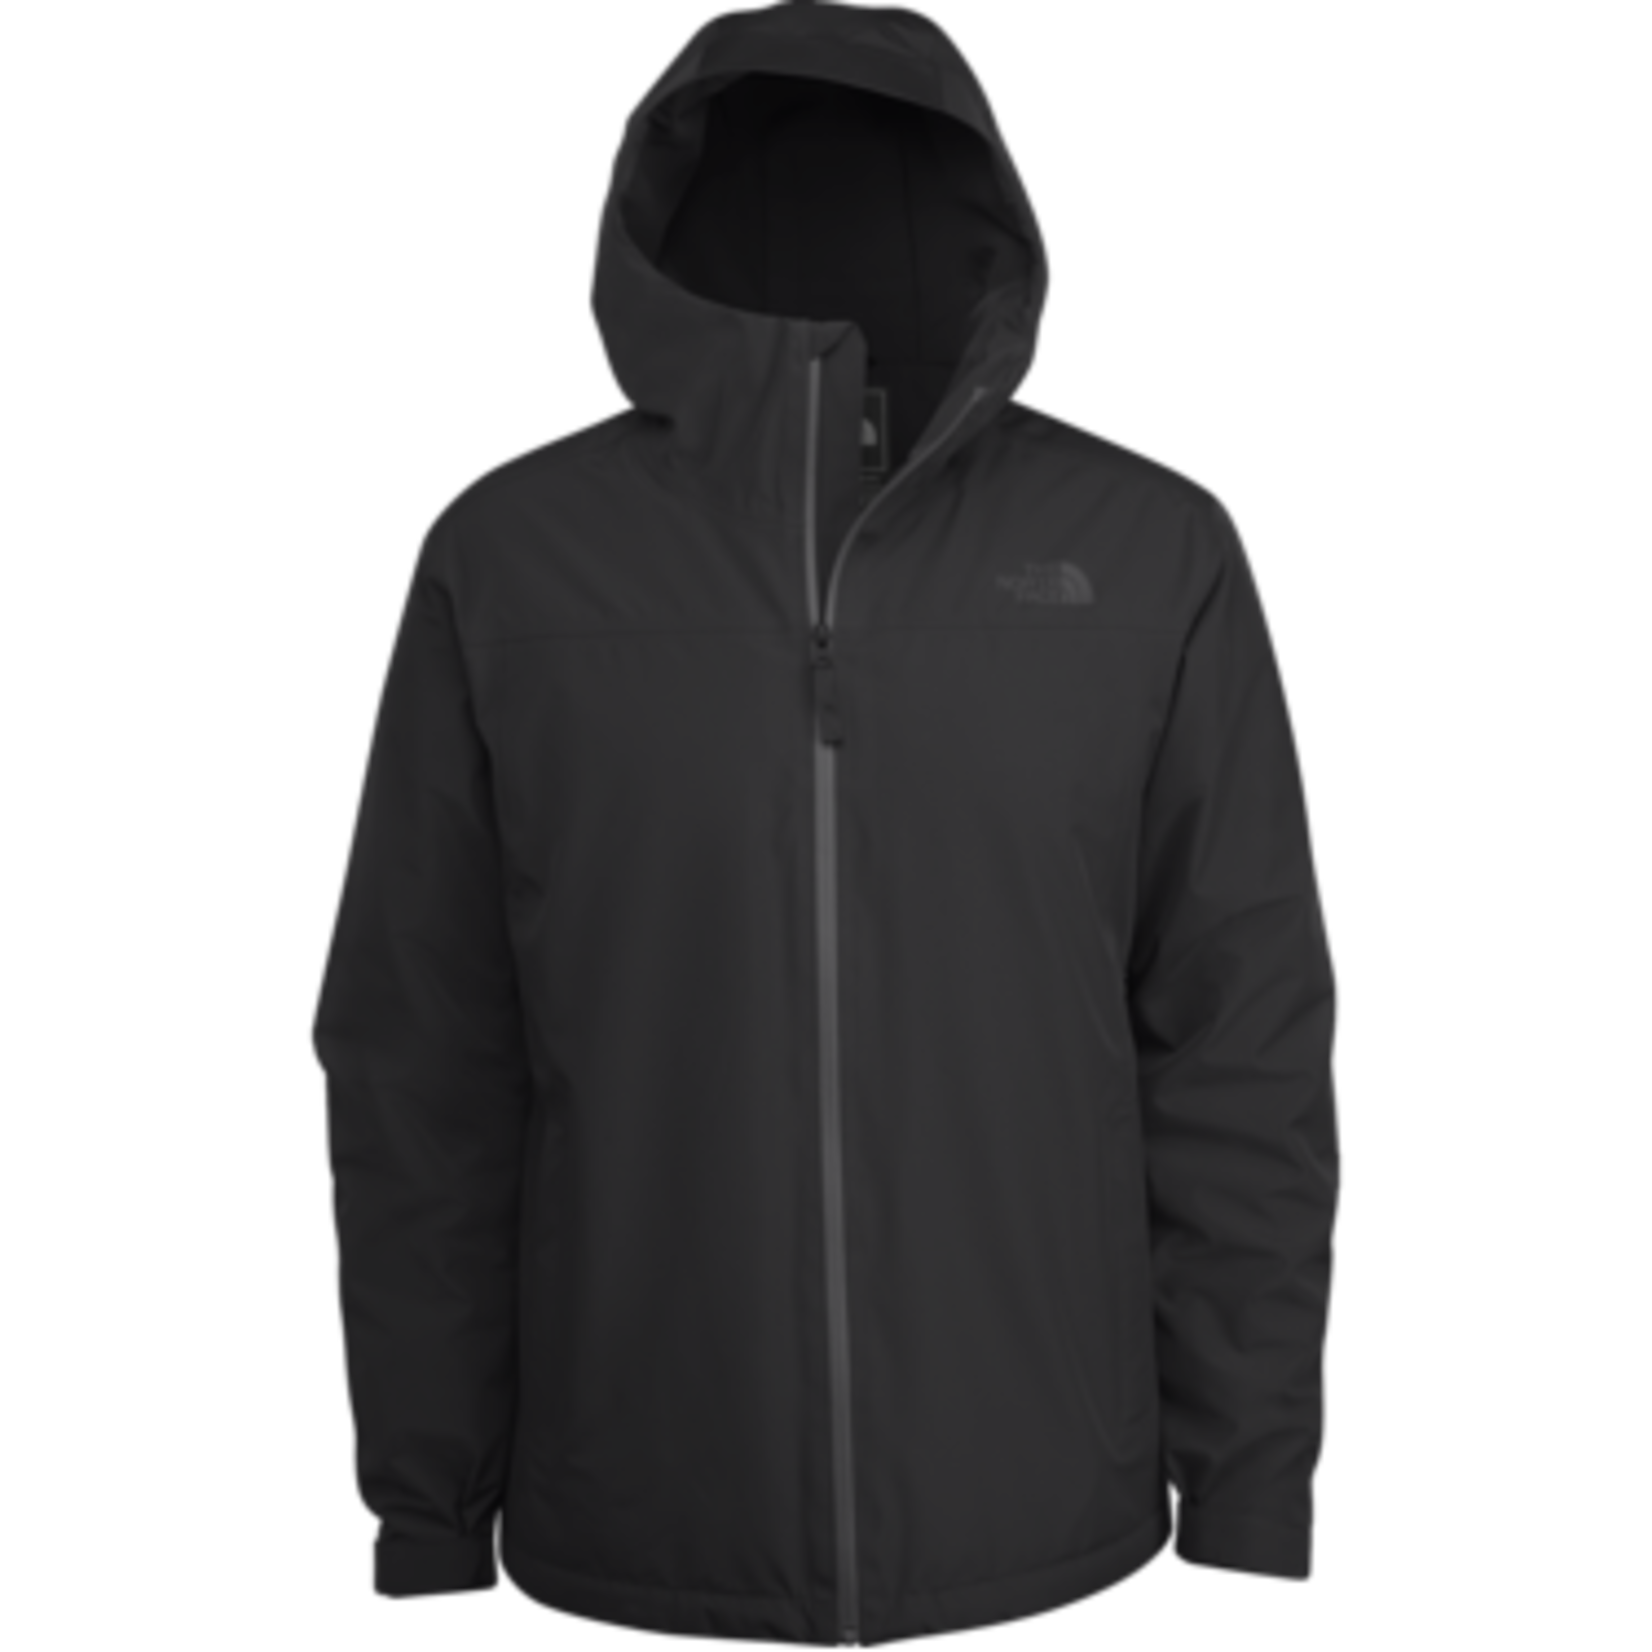 The North Face The North Face Winter Jacket, Dryzzle Futurelight Insulated, Mens